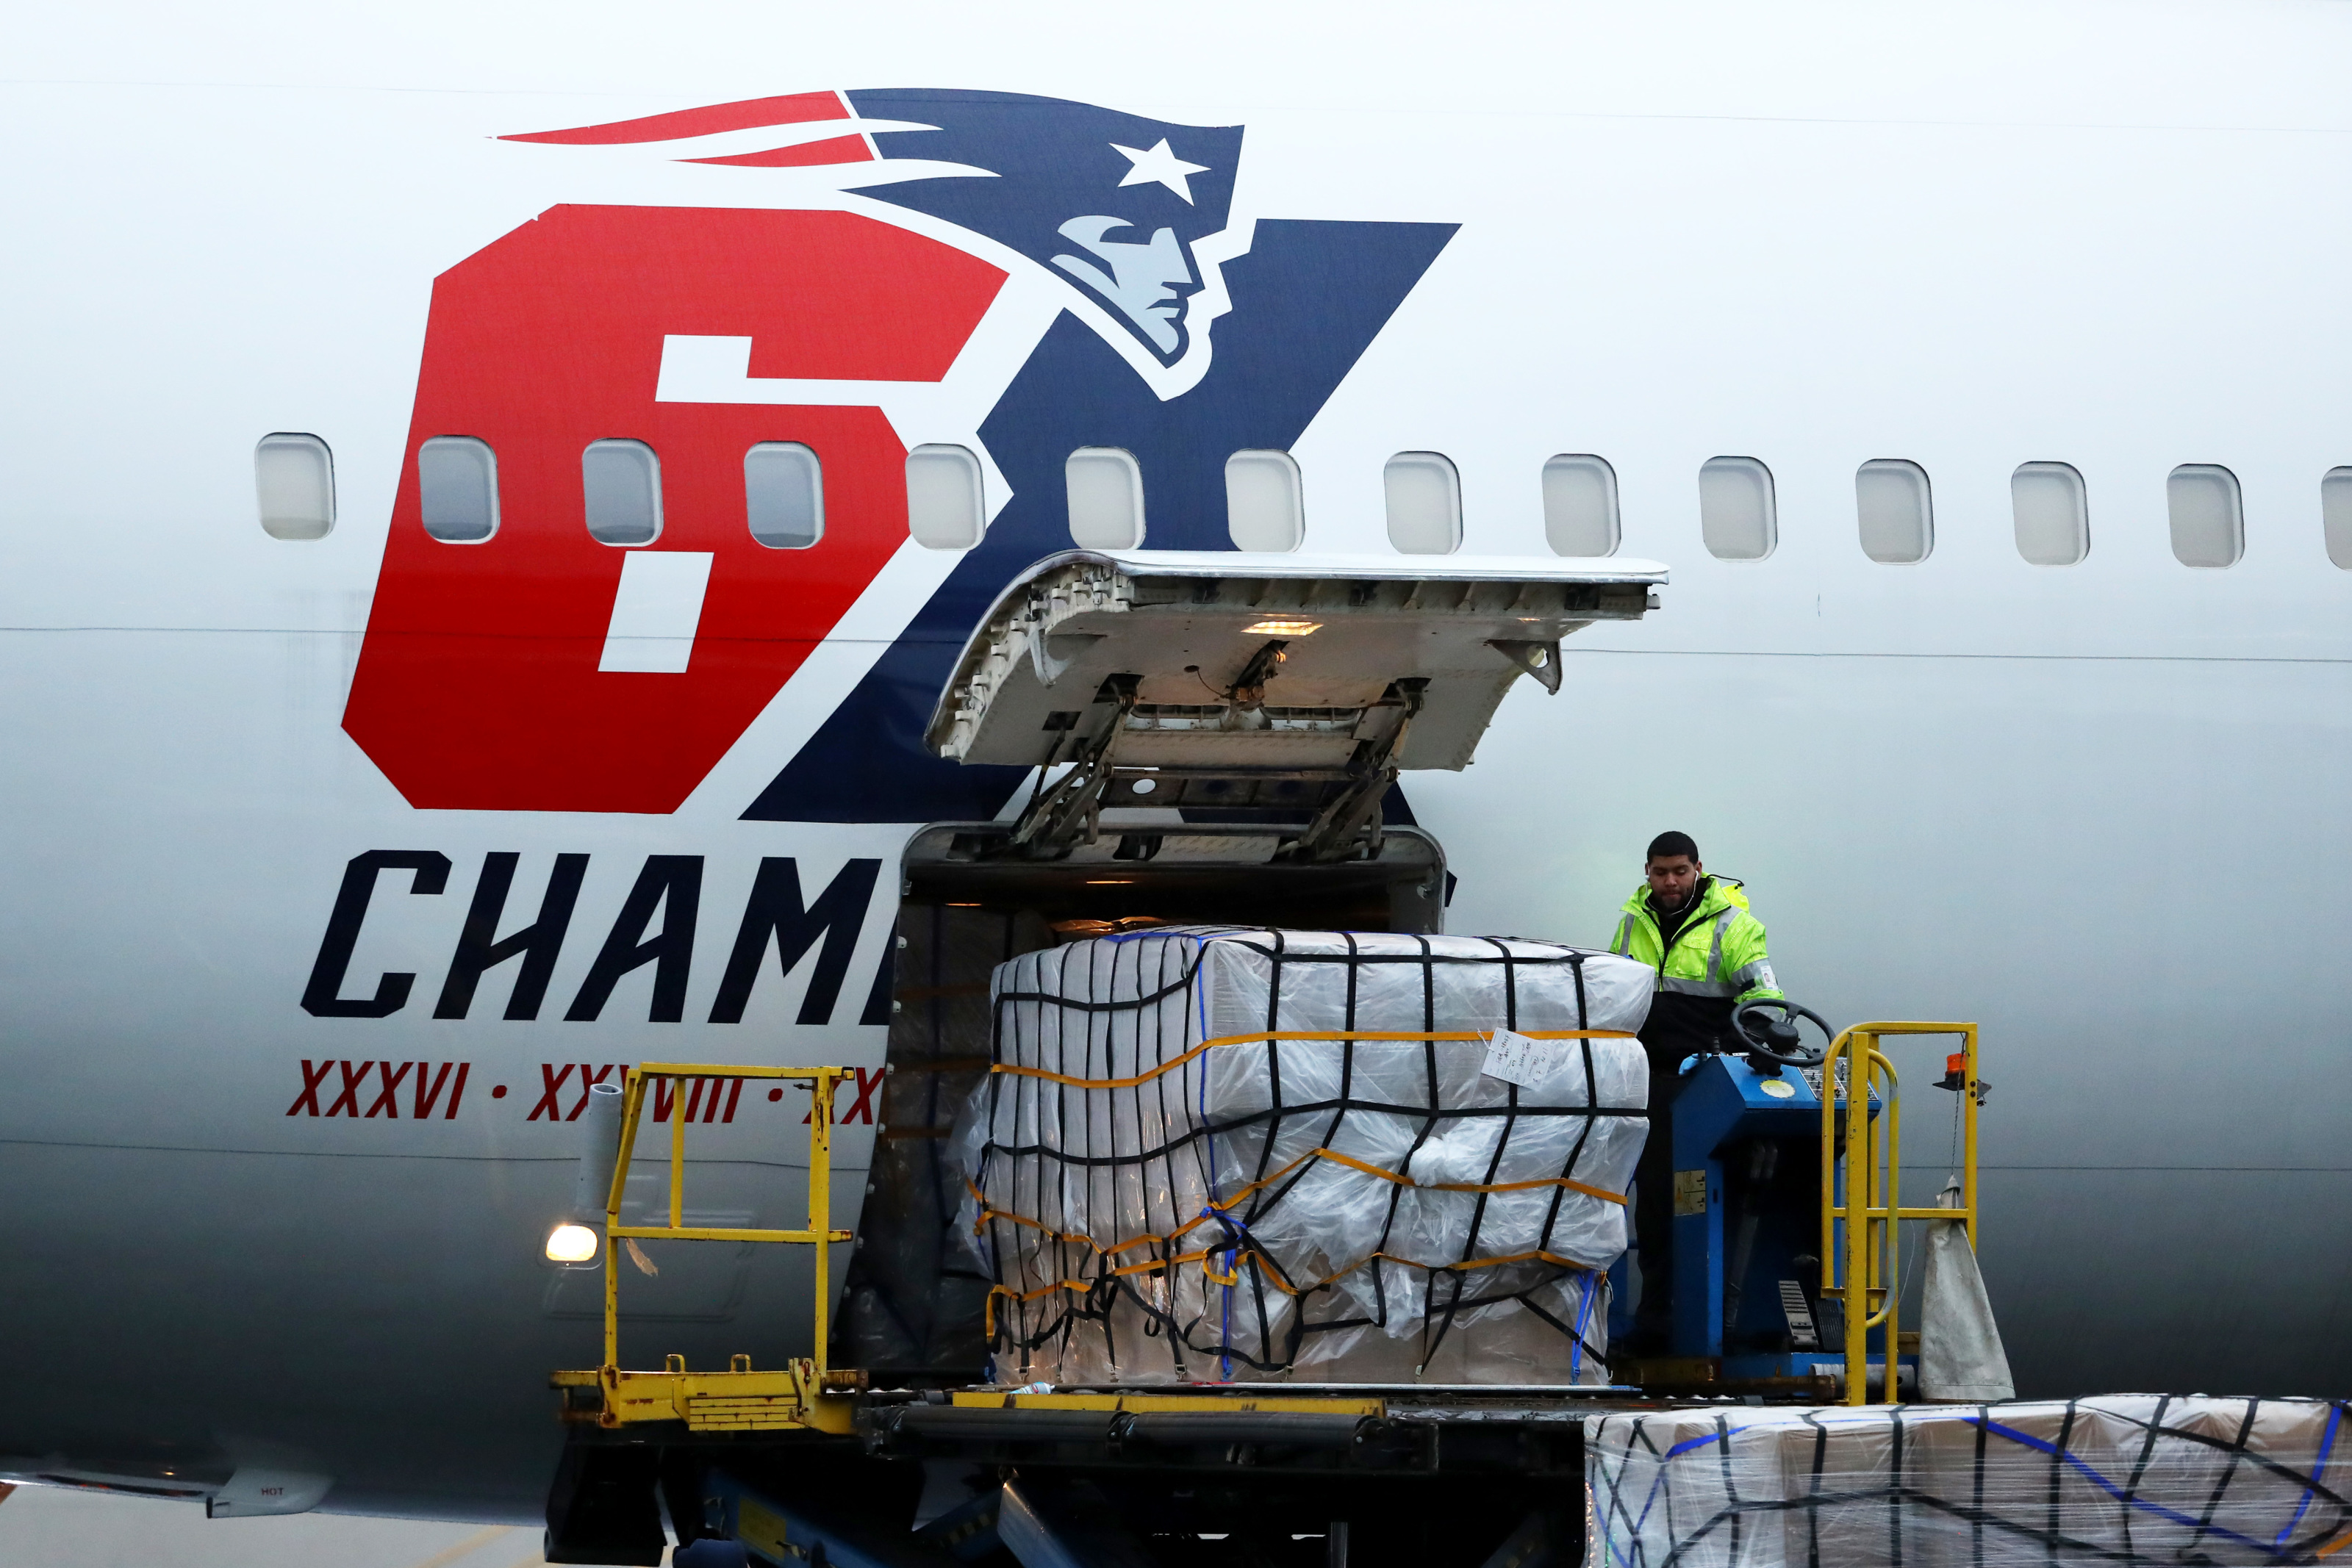 Patriots deliver masks to New York in midst of coronavirus crisis